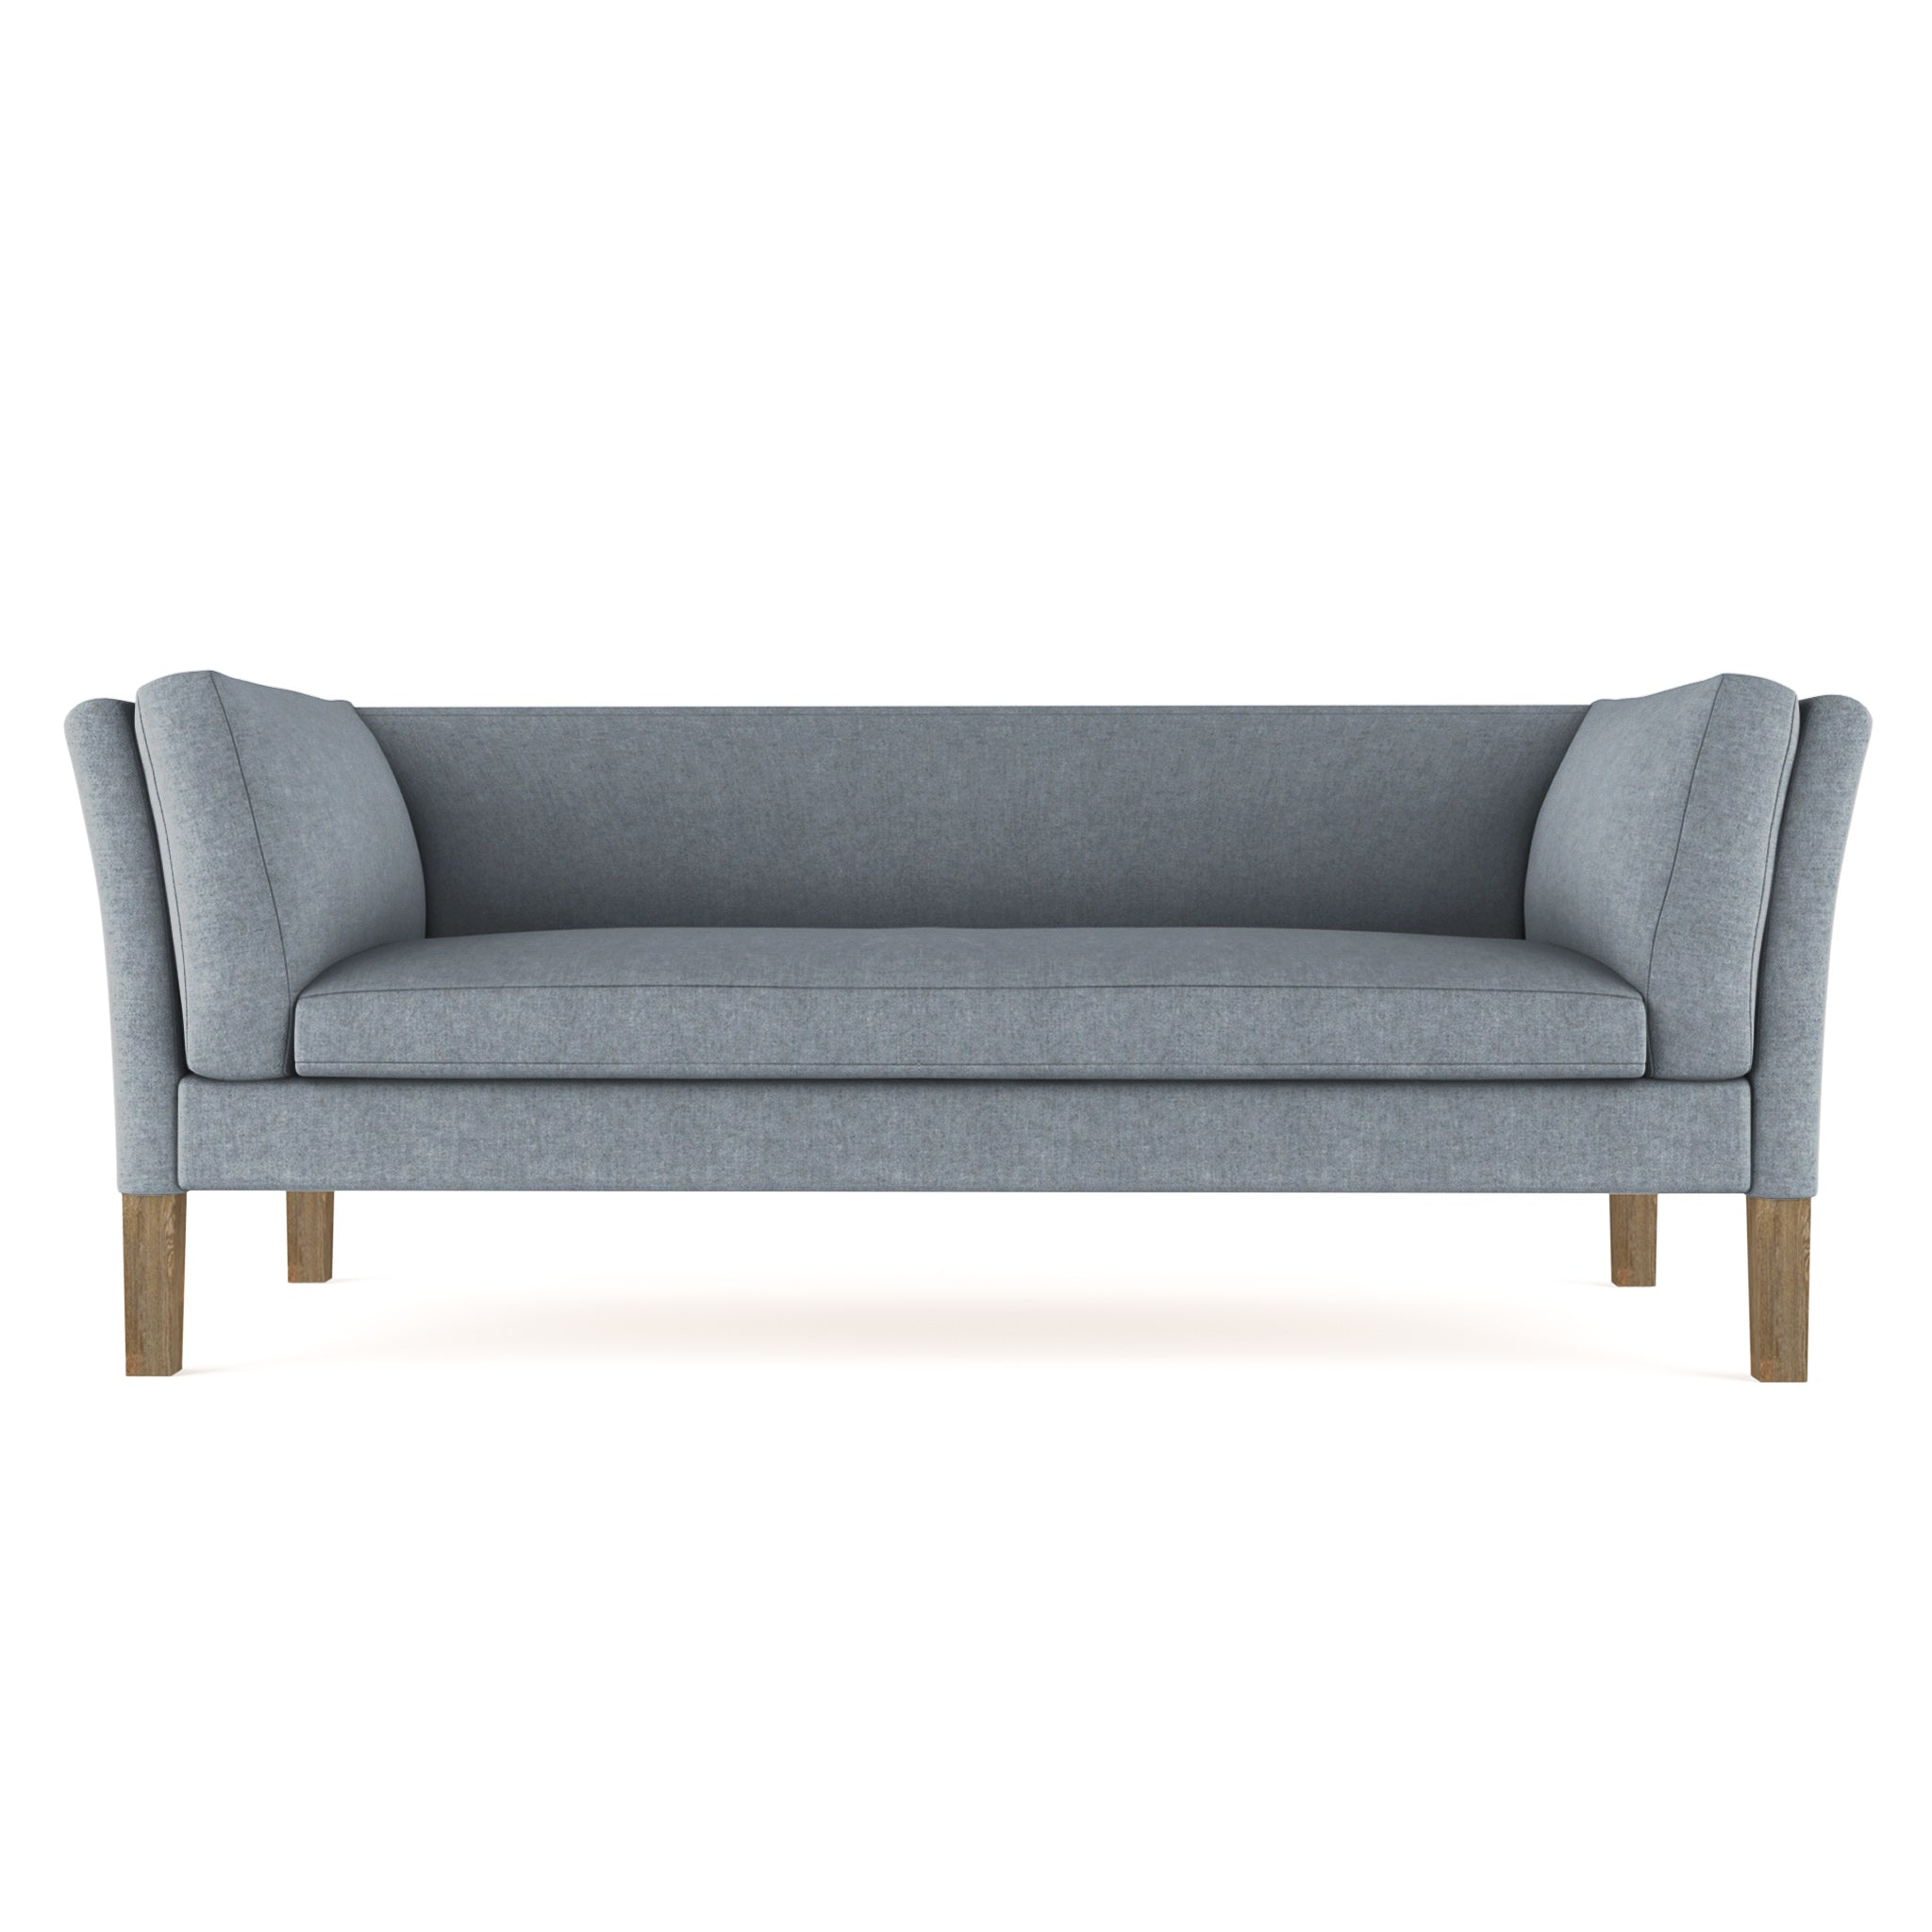 Charlton Sofa - Haze Plush Velvet